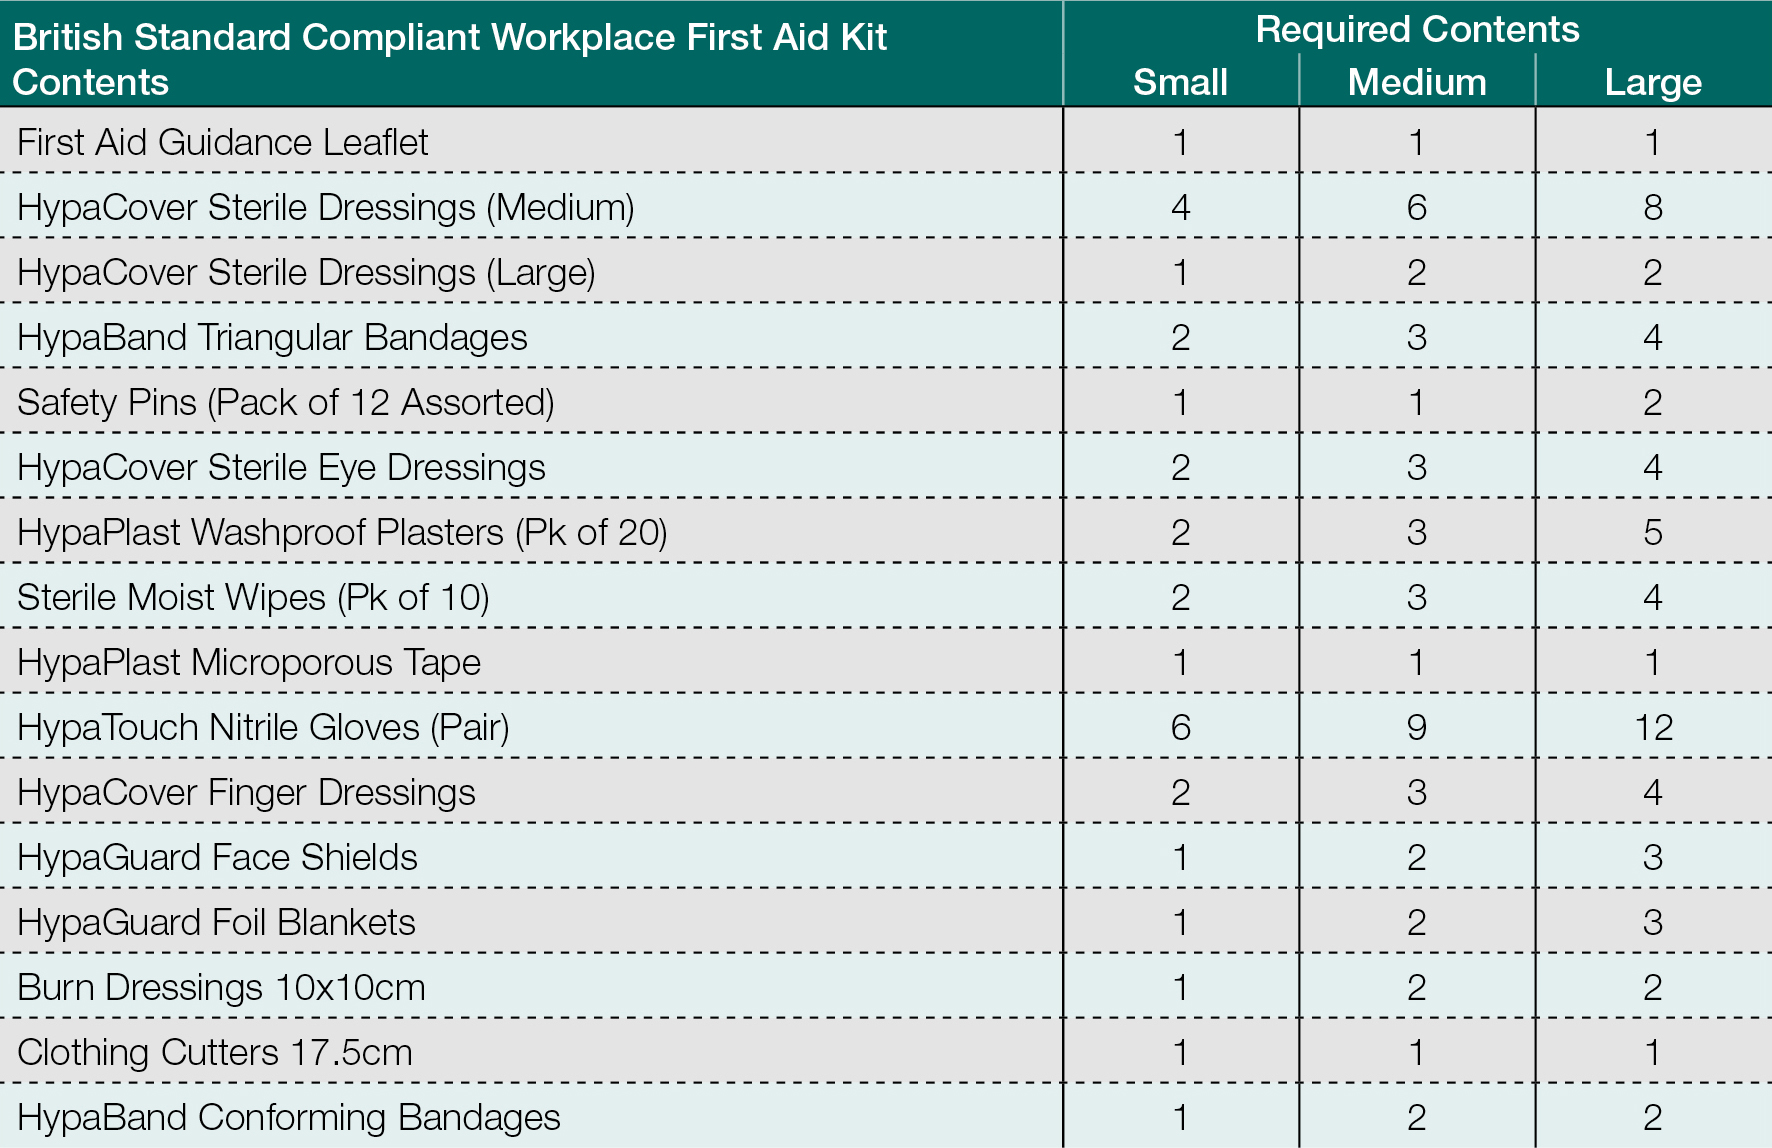 Hse Workplace First Aid Kit Contents Guidance Safety First Aid Training